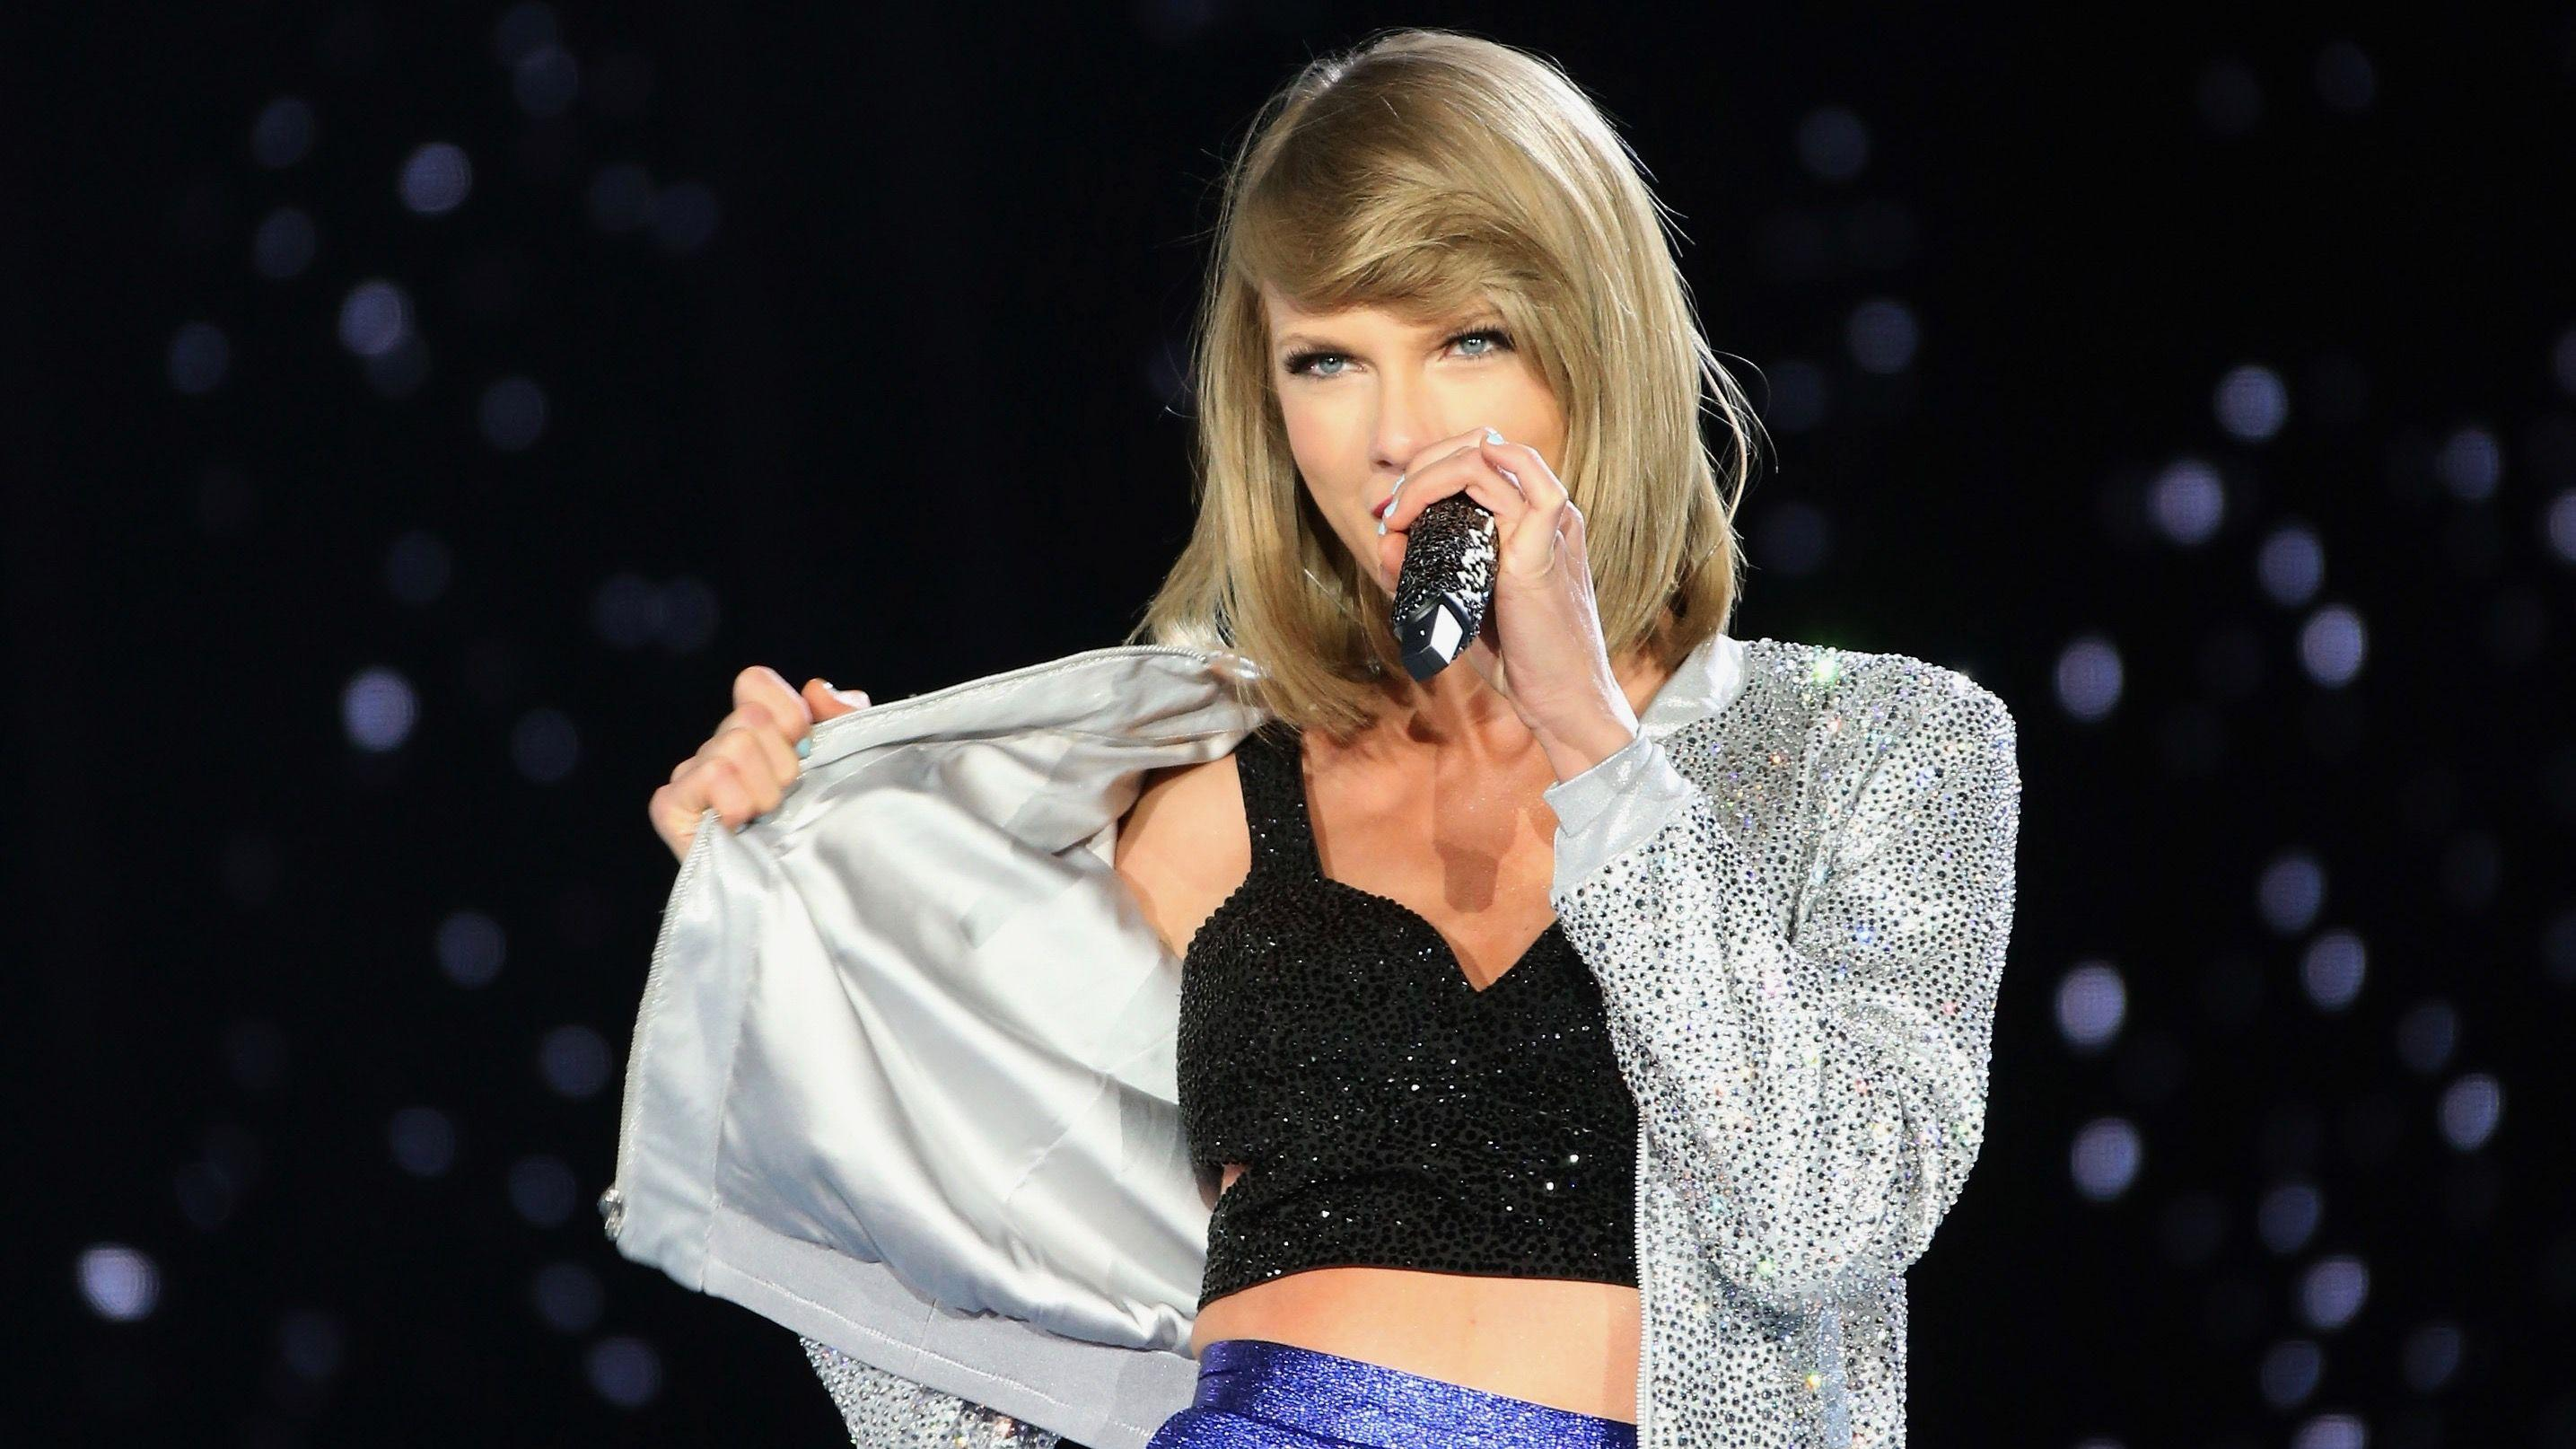 Taylor Swift Shares Cute New Music Video For Song 'Delicate' – Be ...